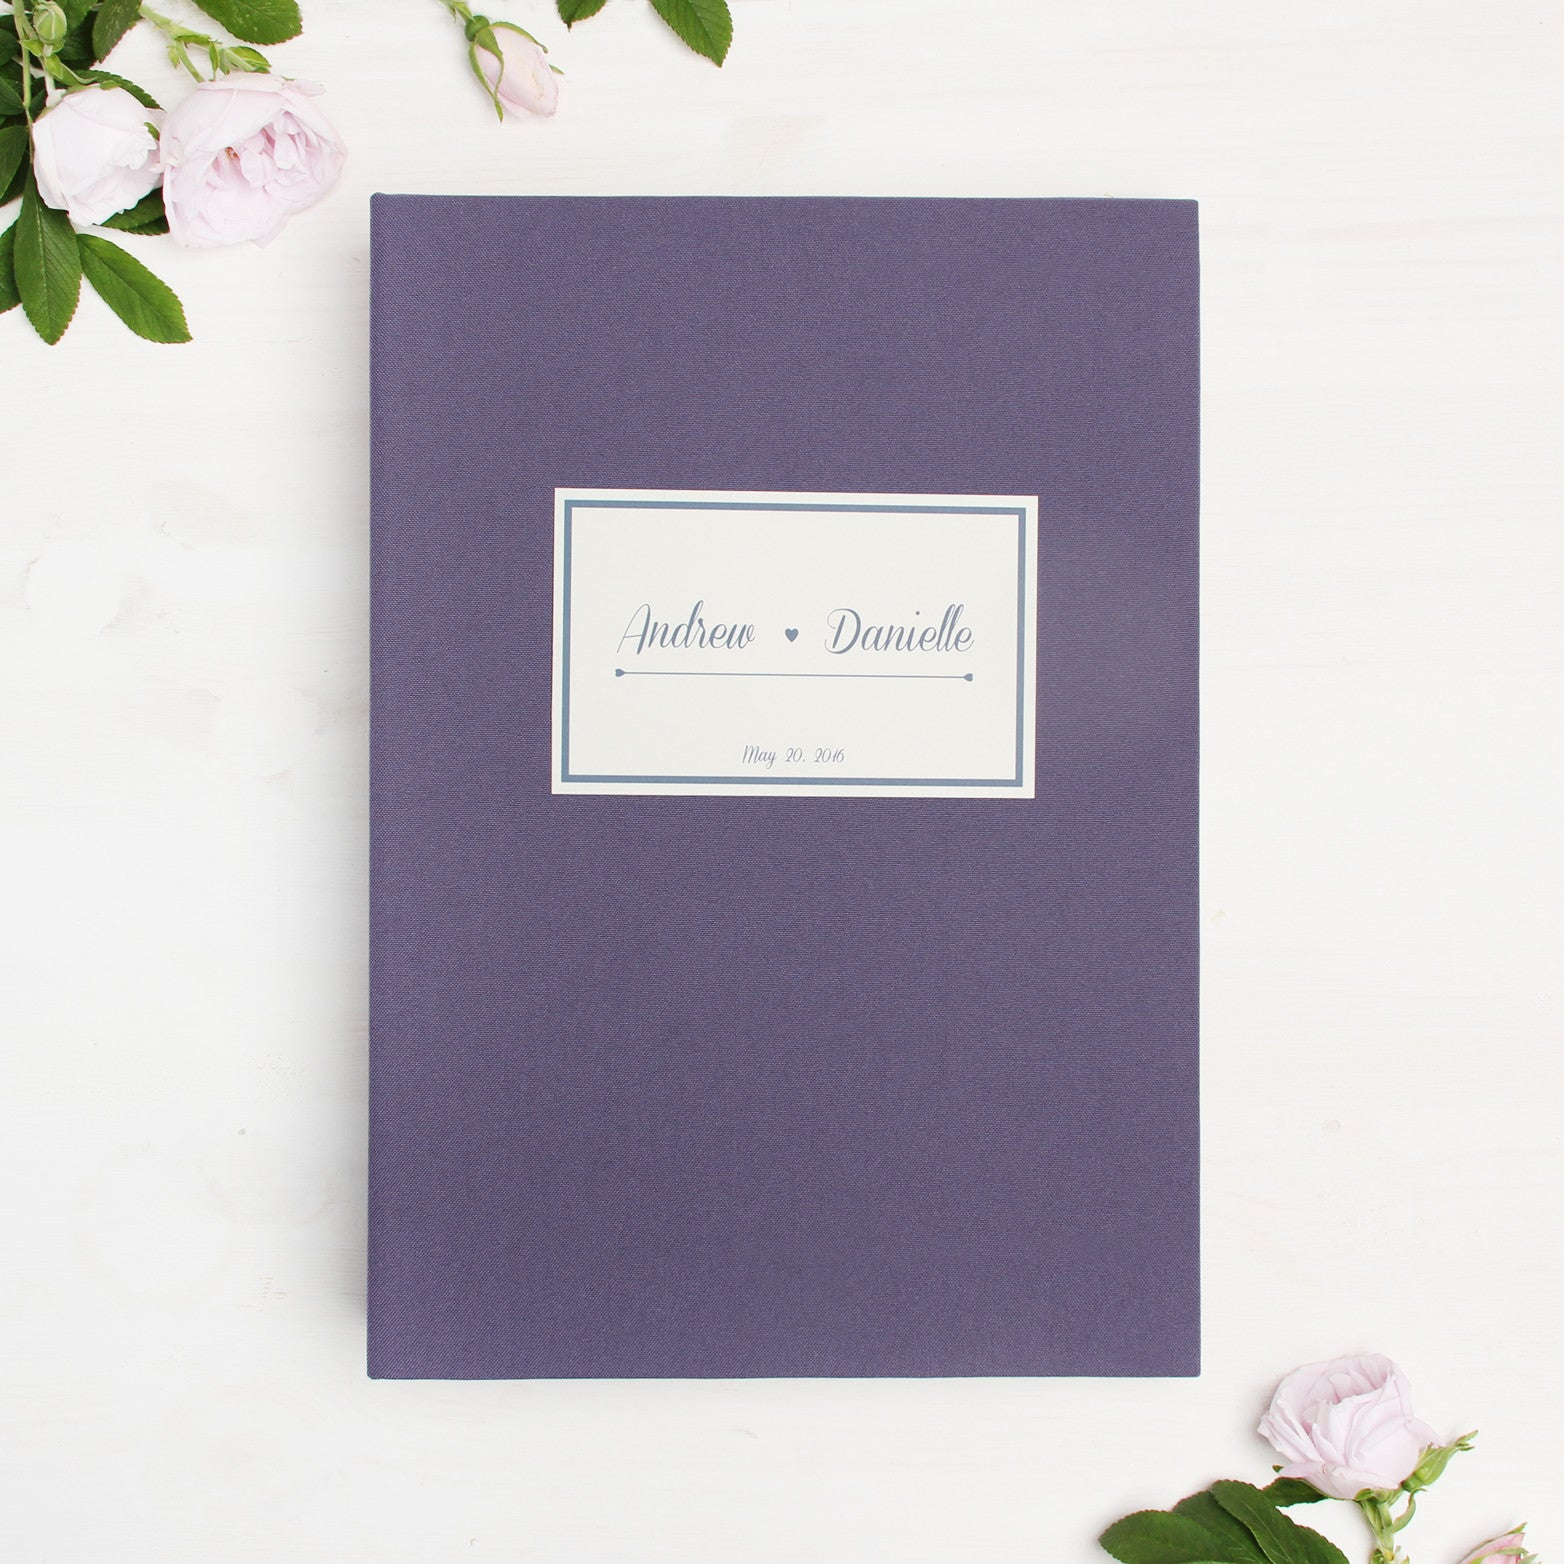 Wedding Guest Book Sign in Book Instant Album Lavender with Paper Label by Liumy - Liumy